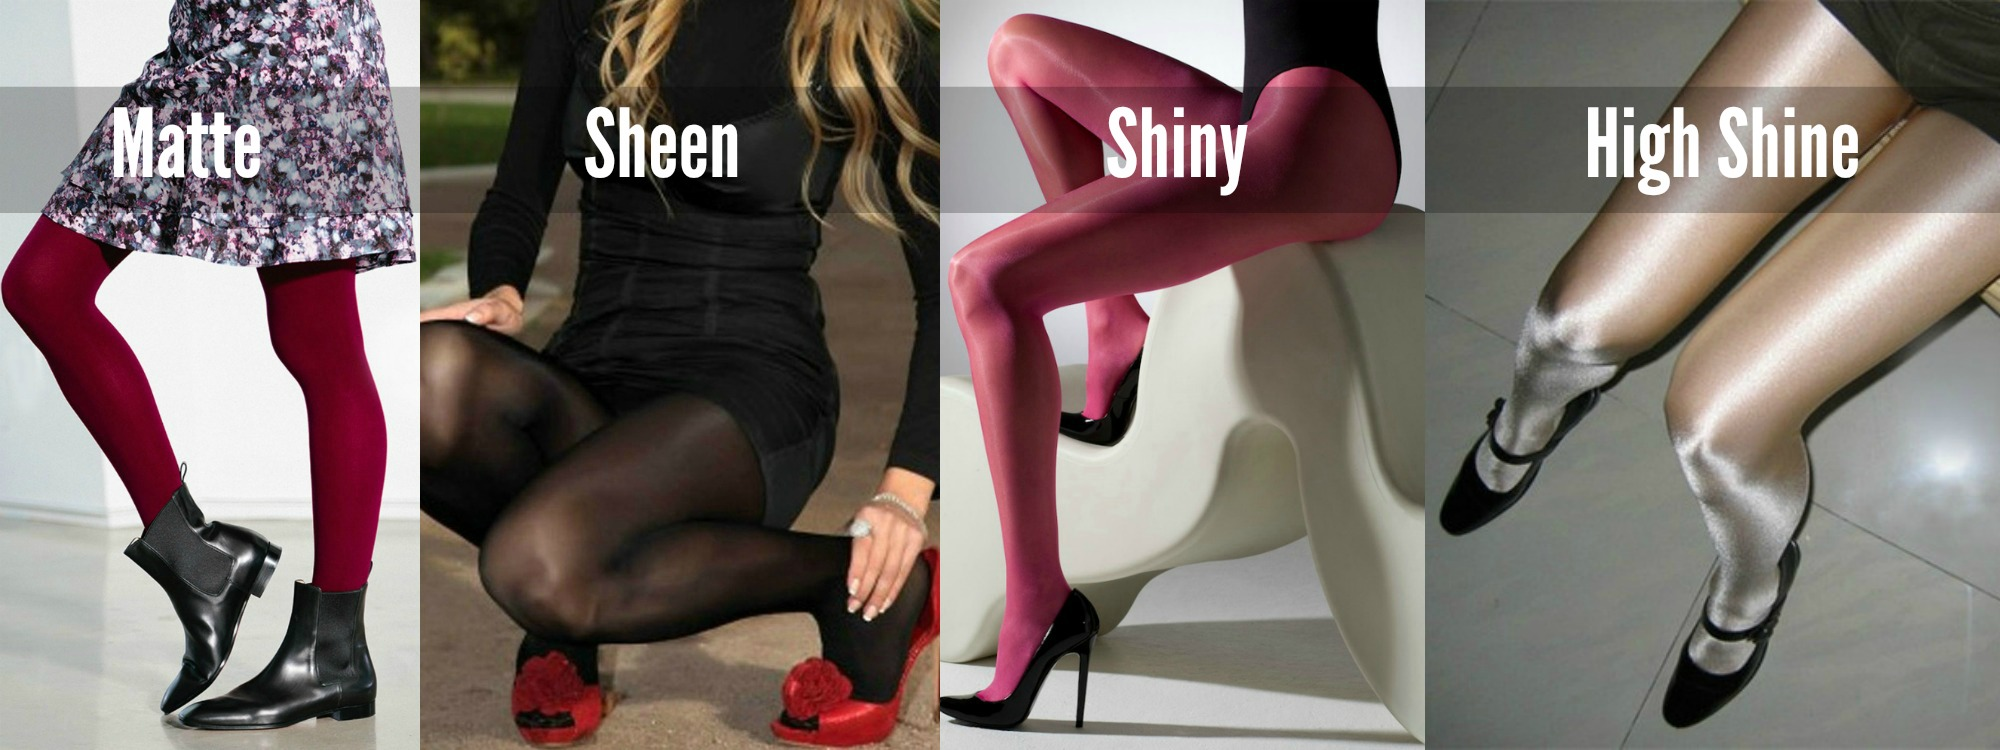 pantyhose make legs